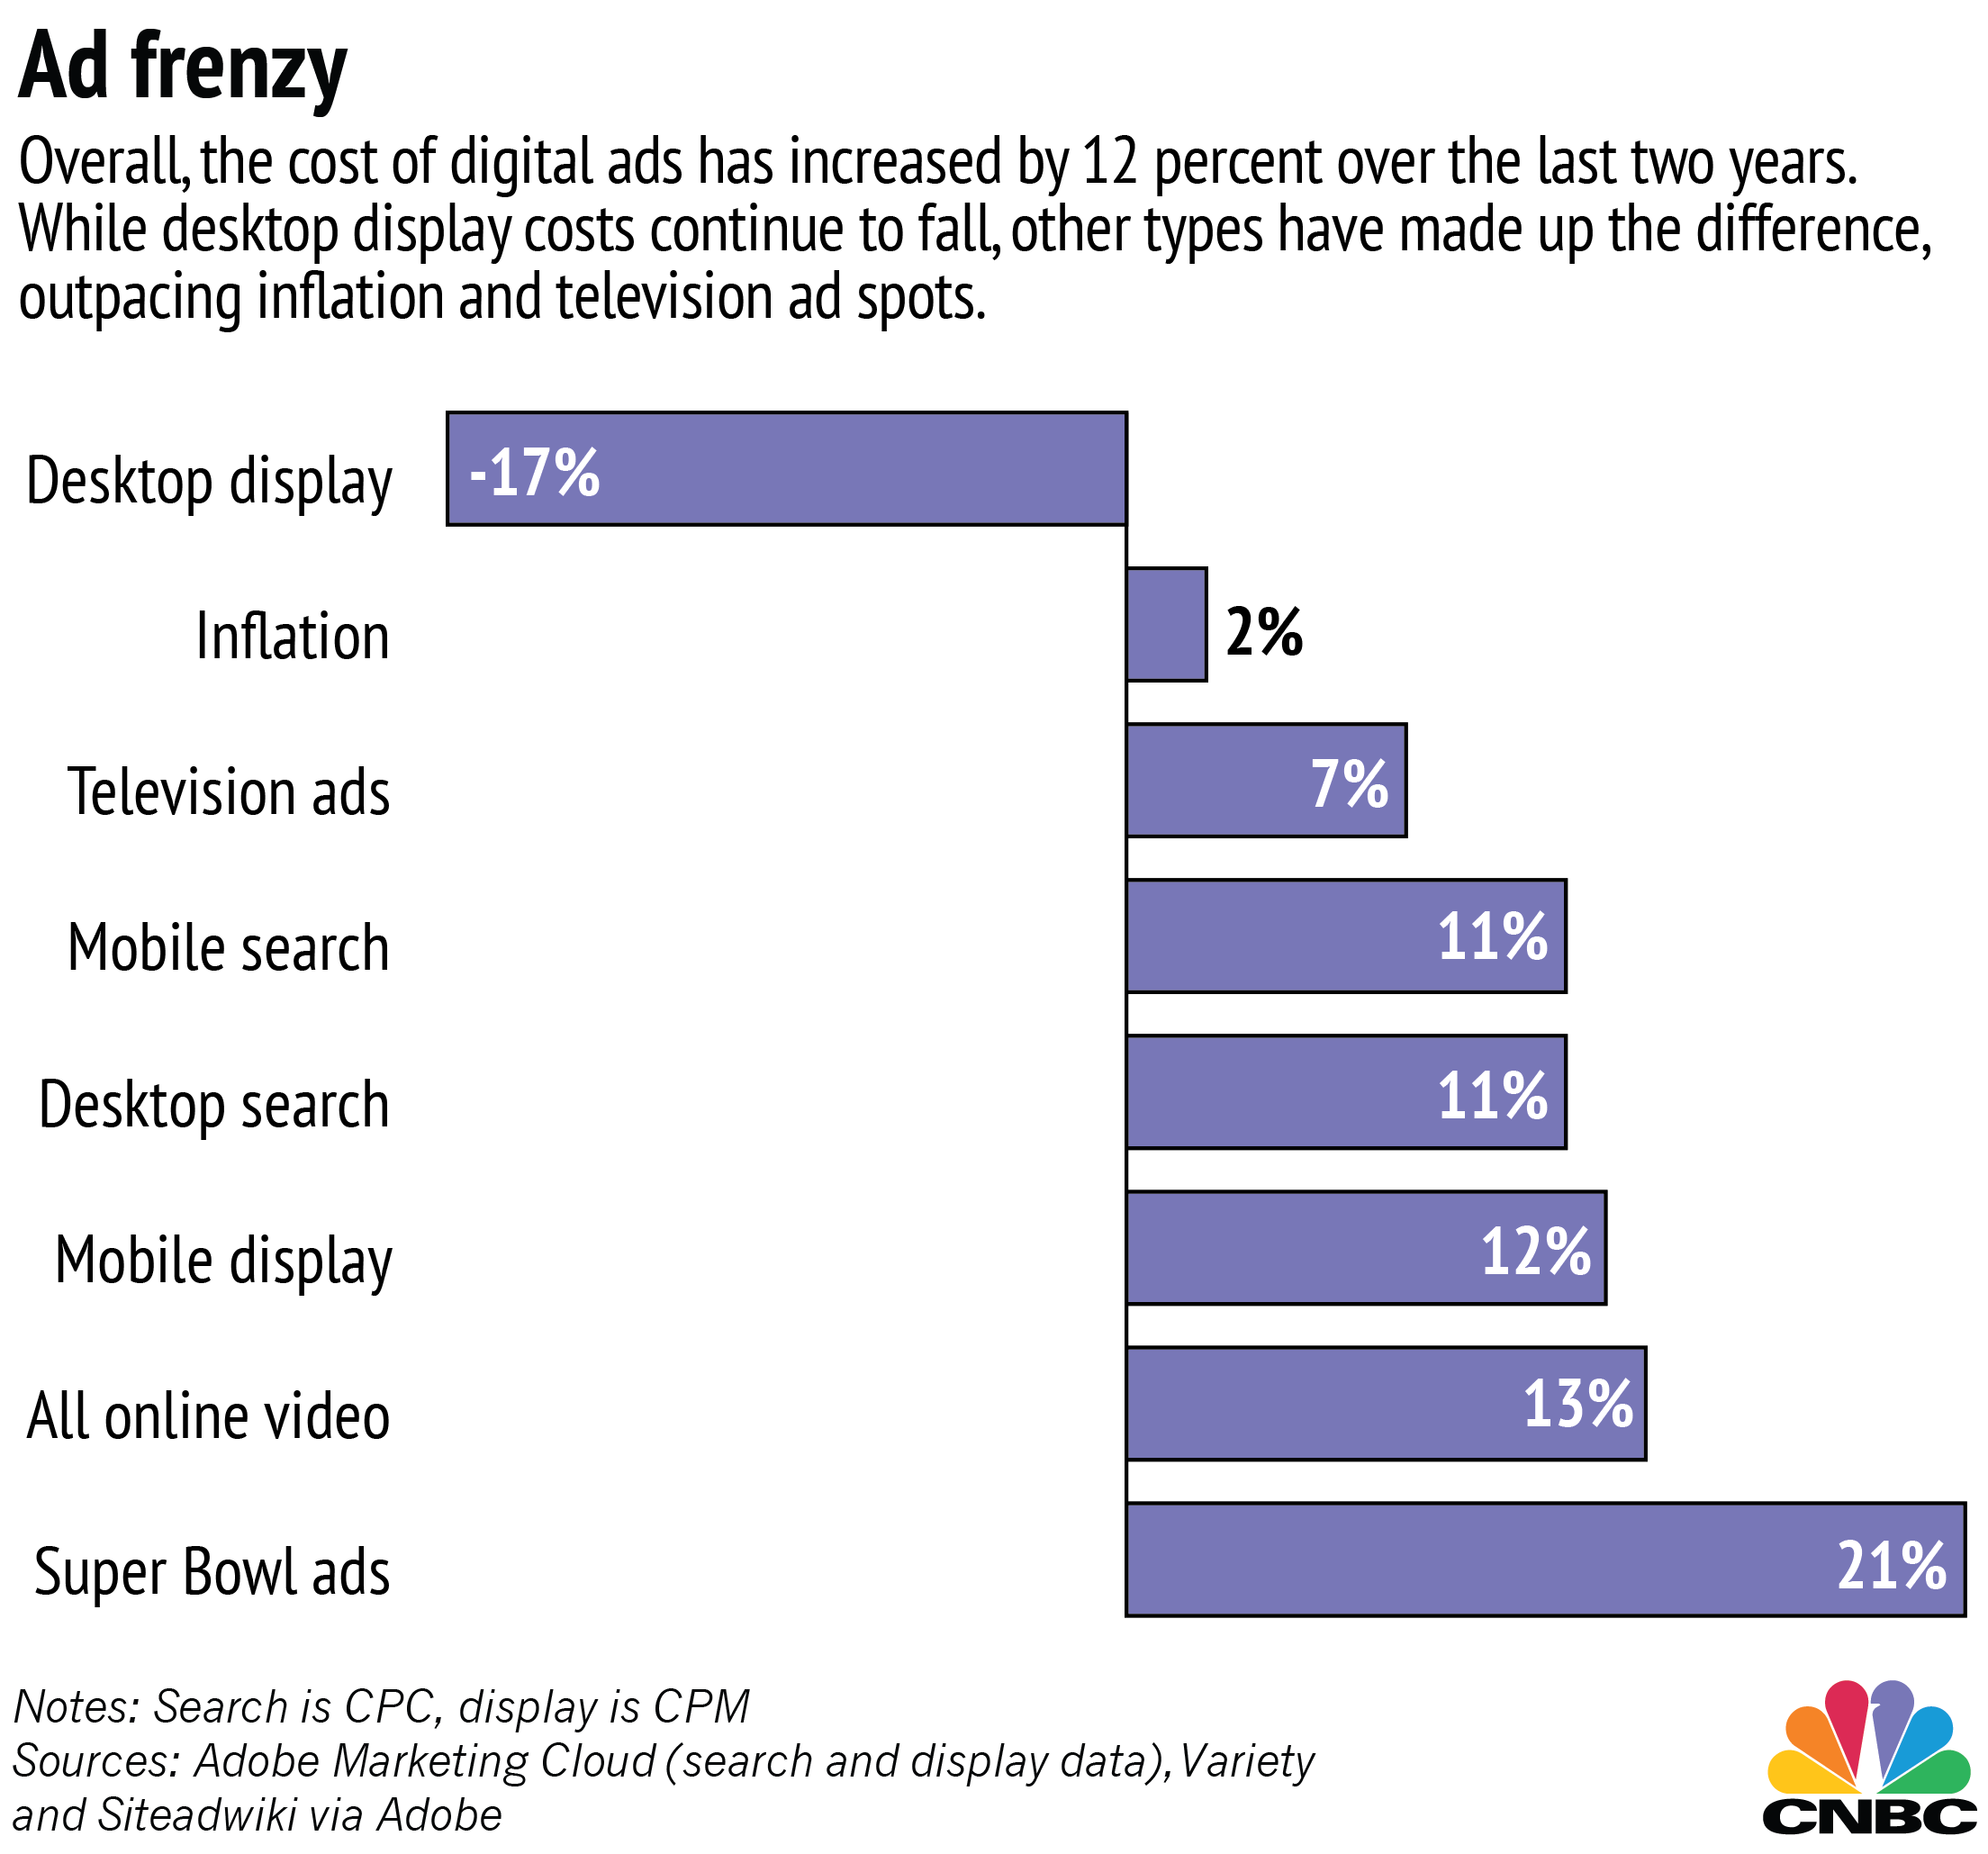 Digital Ads More Expensive But Reaching Fewer Consumers